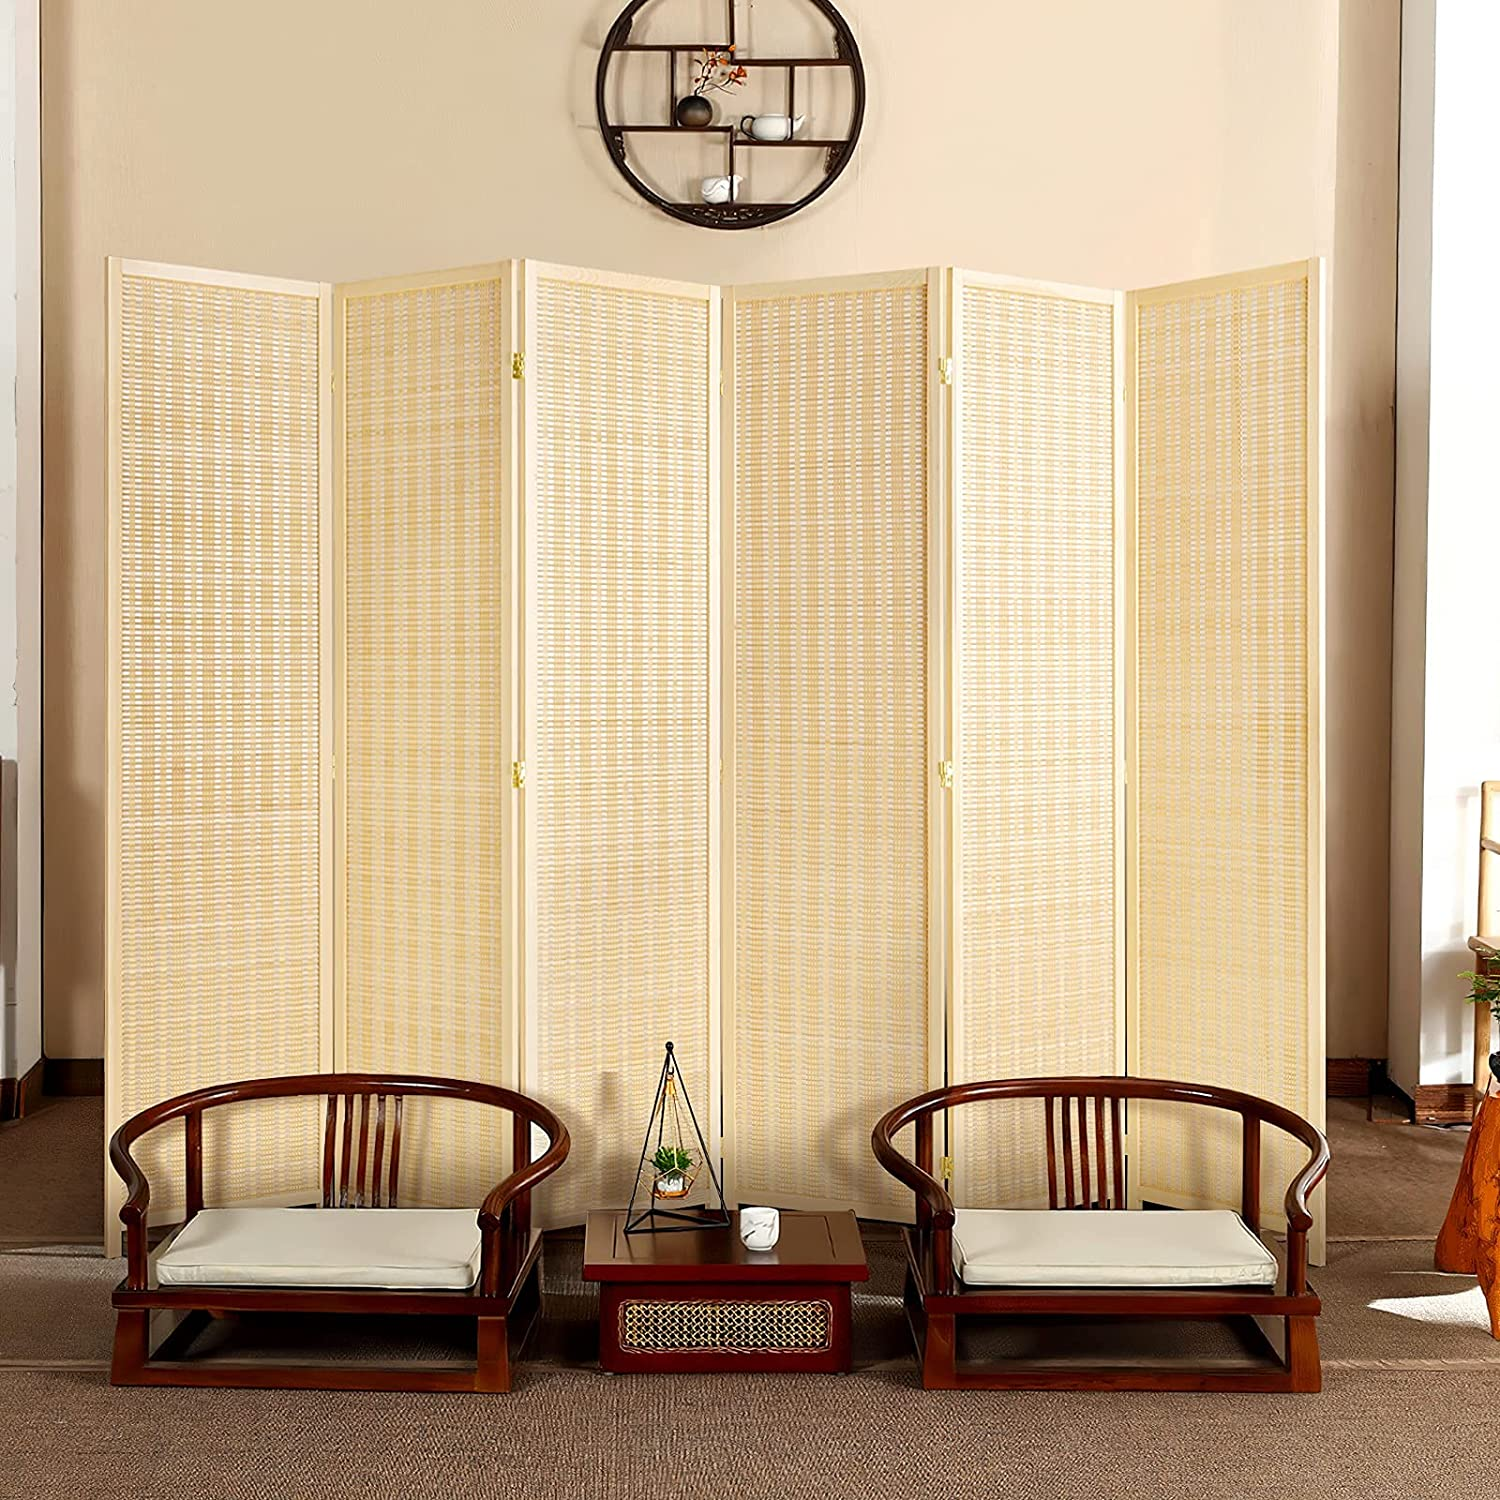 oneinmil Bamboo Room Divider 再再販 安全 Folding Part Semi-Private Portable